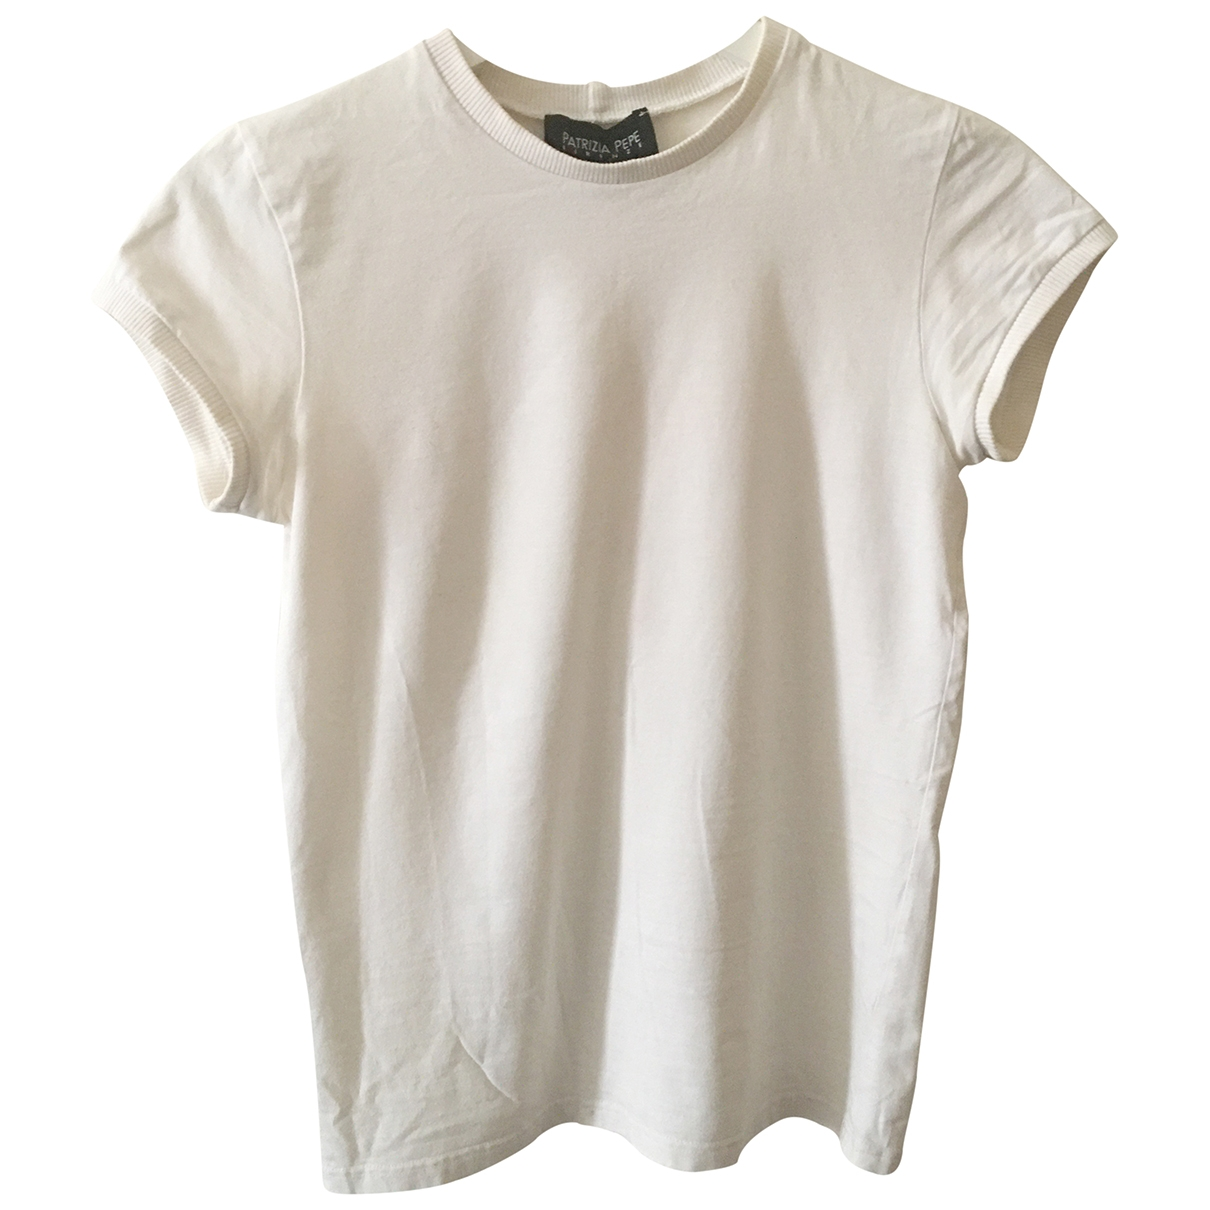 Patrizia Pepe \N White Cotton  top for Women S International